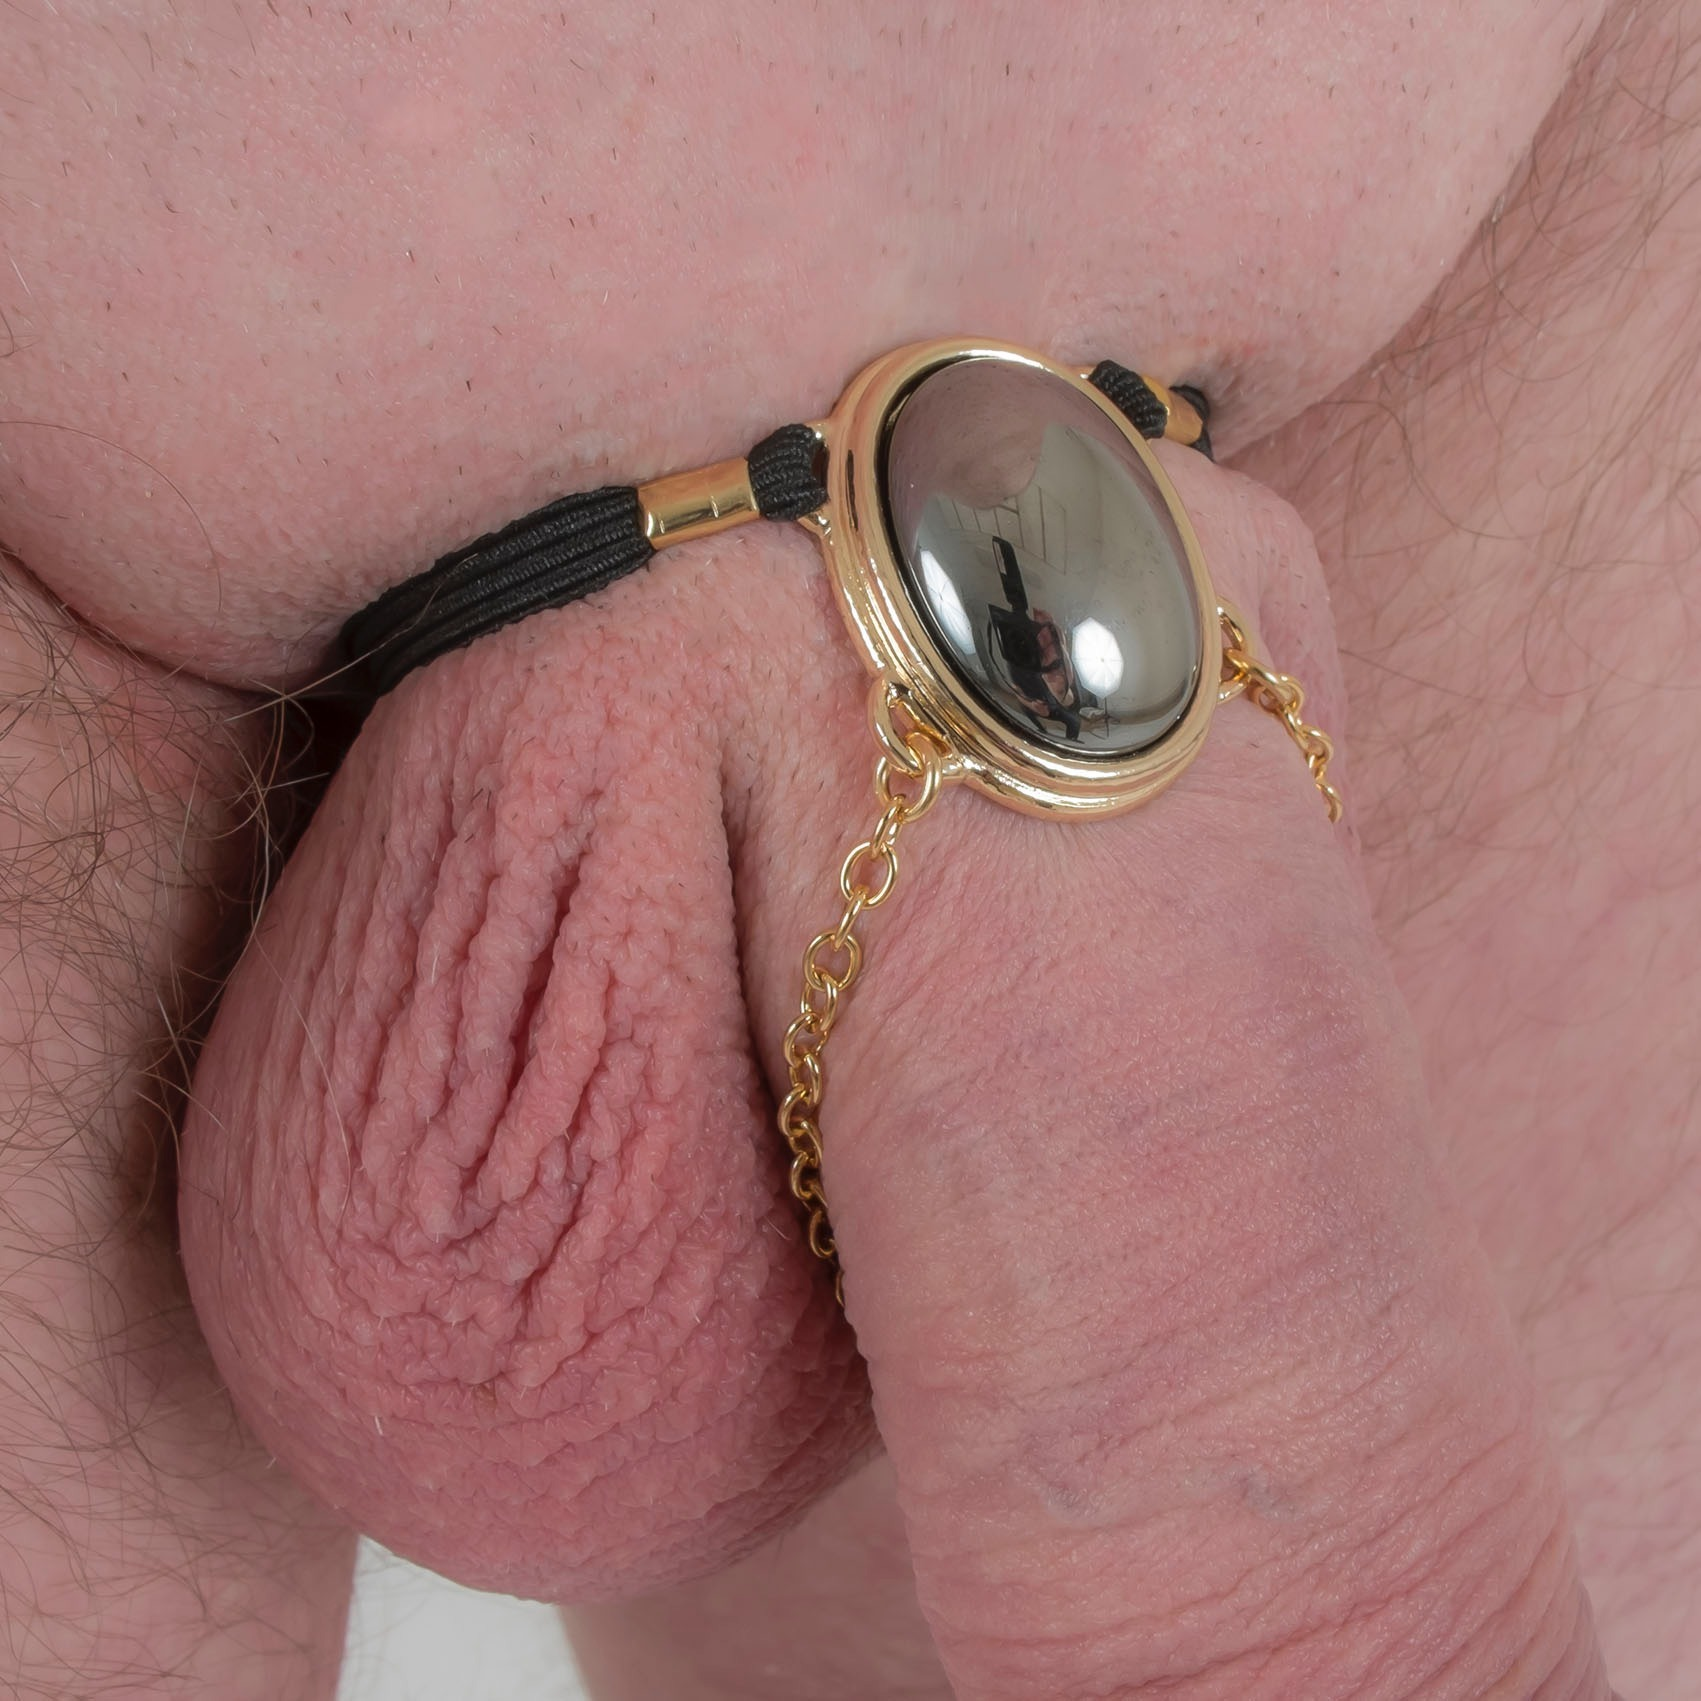 Metal Penis Rings Cage Stainless Steel Bdsm Cock Delaying Ejaculation Cockring Erotic Bondage For Men Body Jewelry